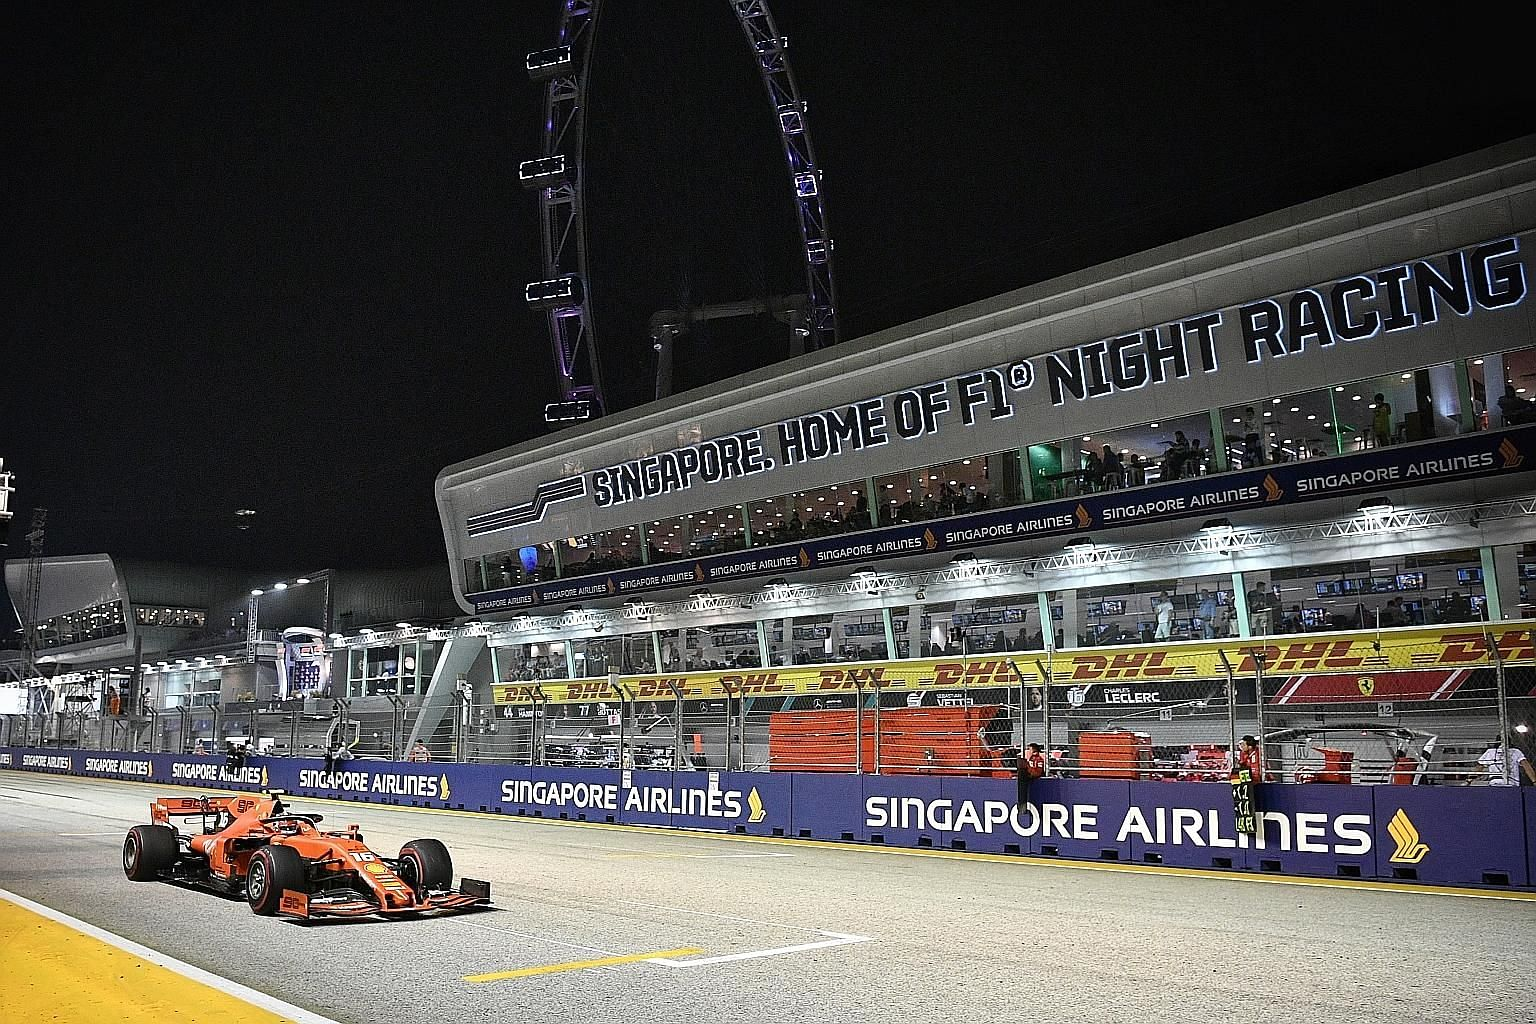 Pole sitter Charles Leclerc leading last year's Singapore Grand Prix, before Ferrari's pit-lane strategy benefited teammate Sebastian Vettel, who went on to win his fifth title at Marina Bay.